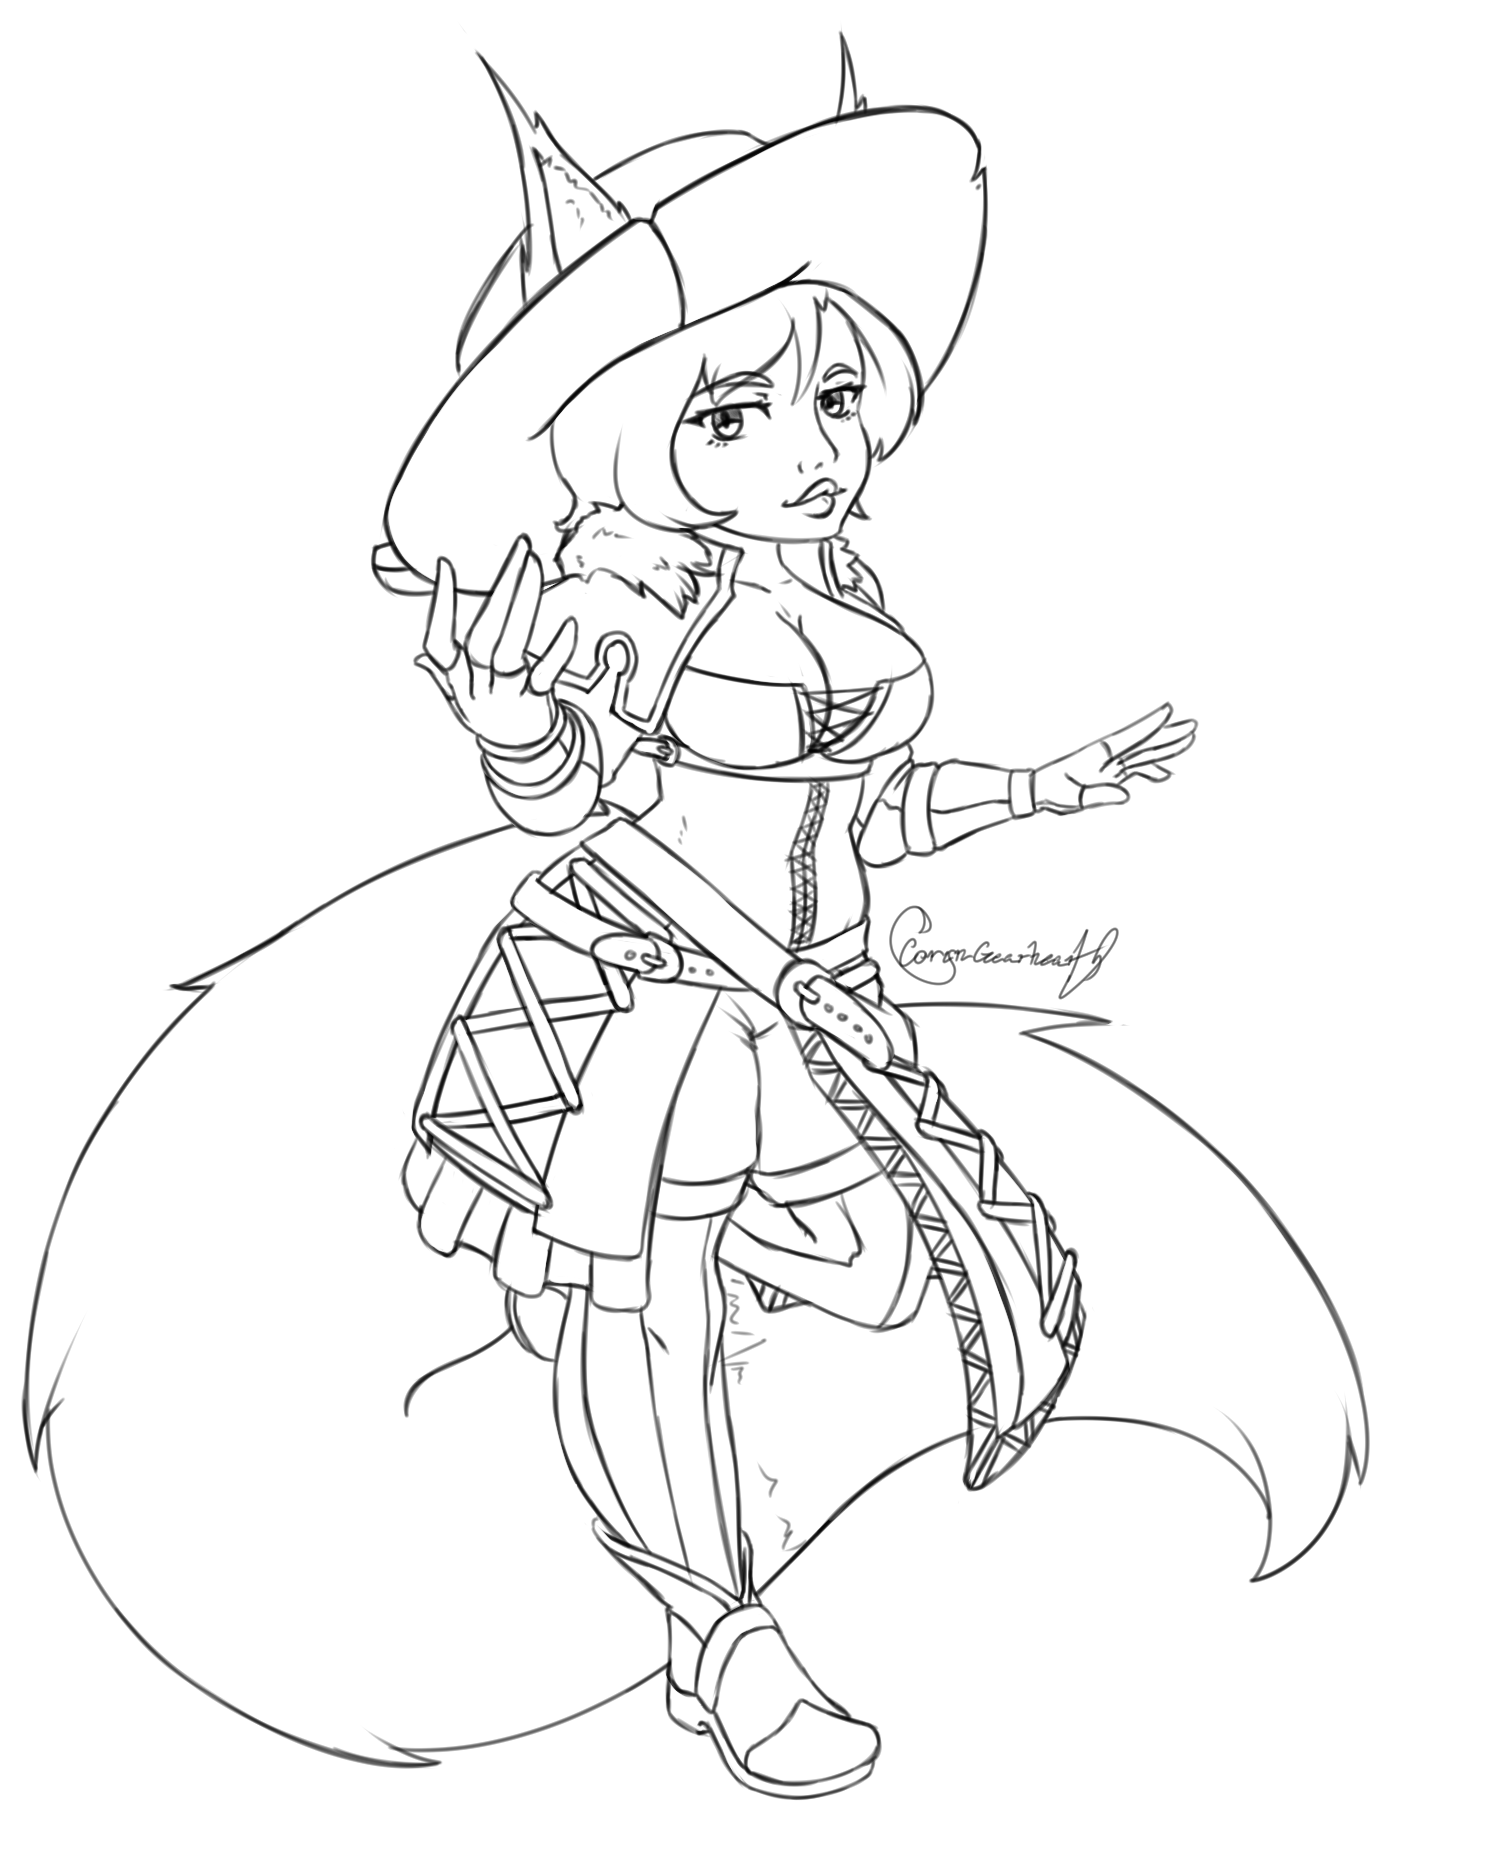 Witchstacc doodle 2